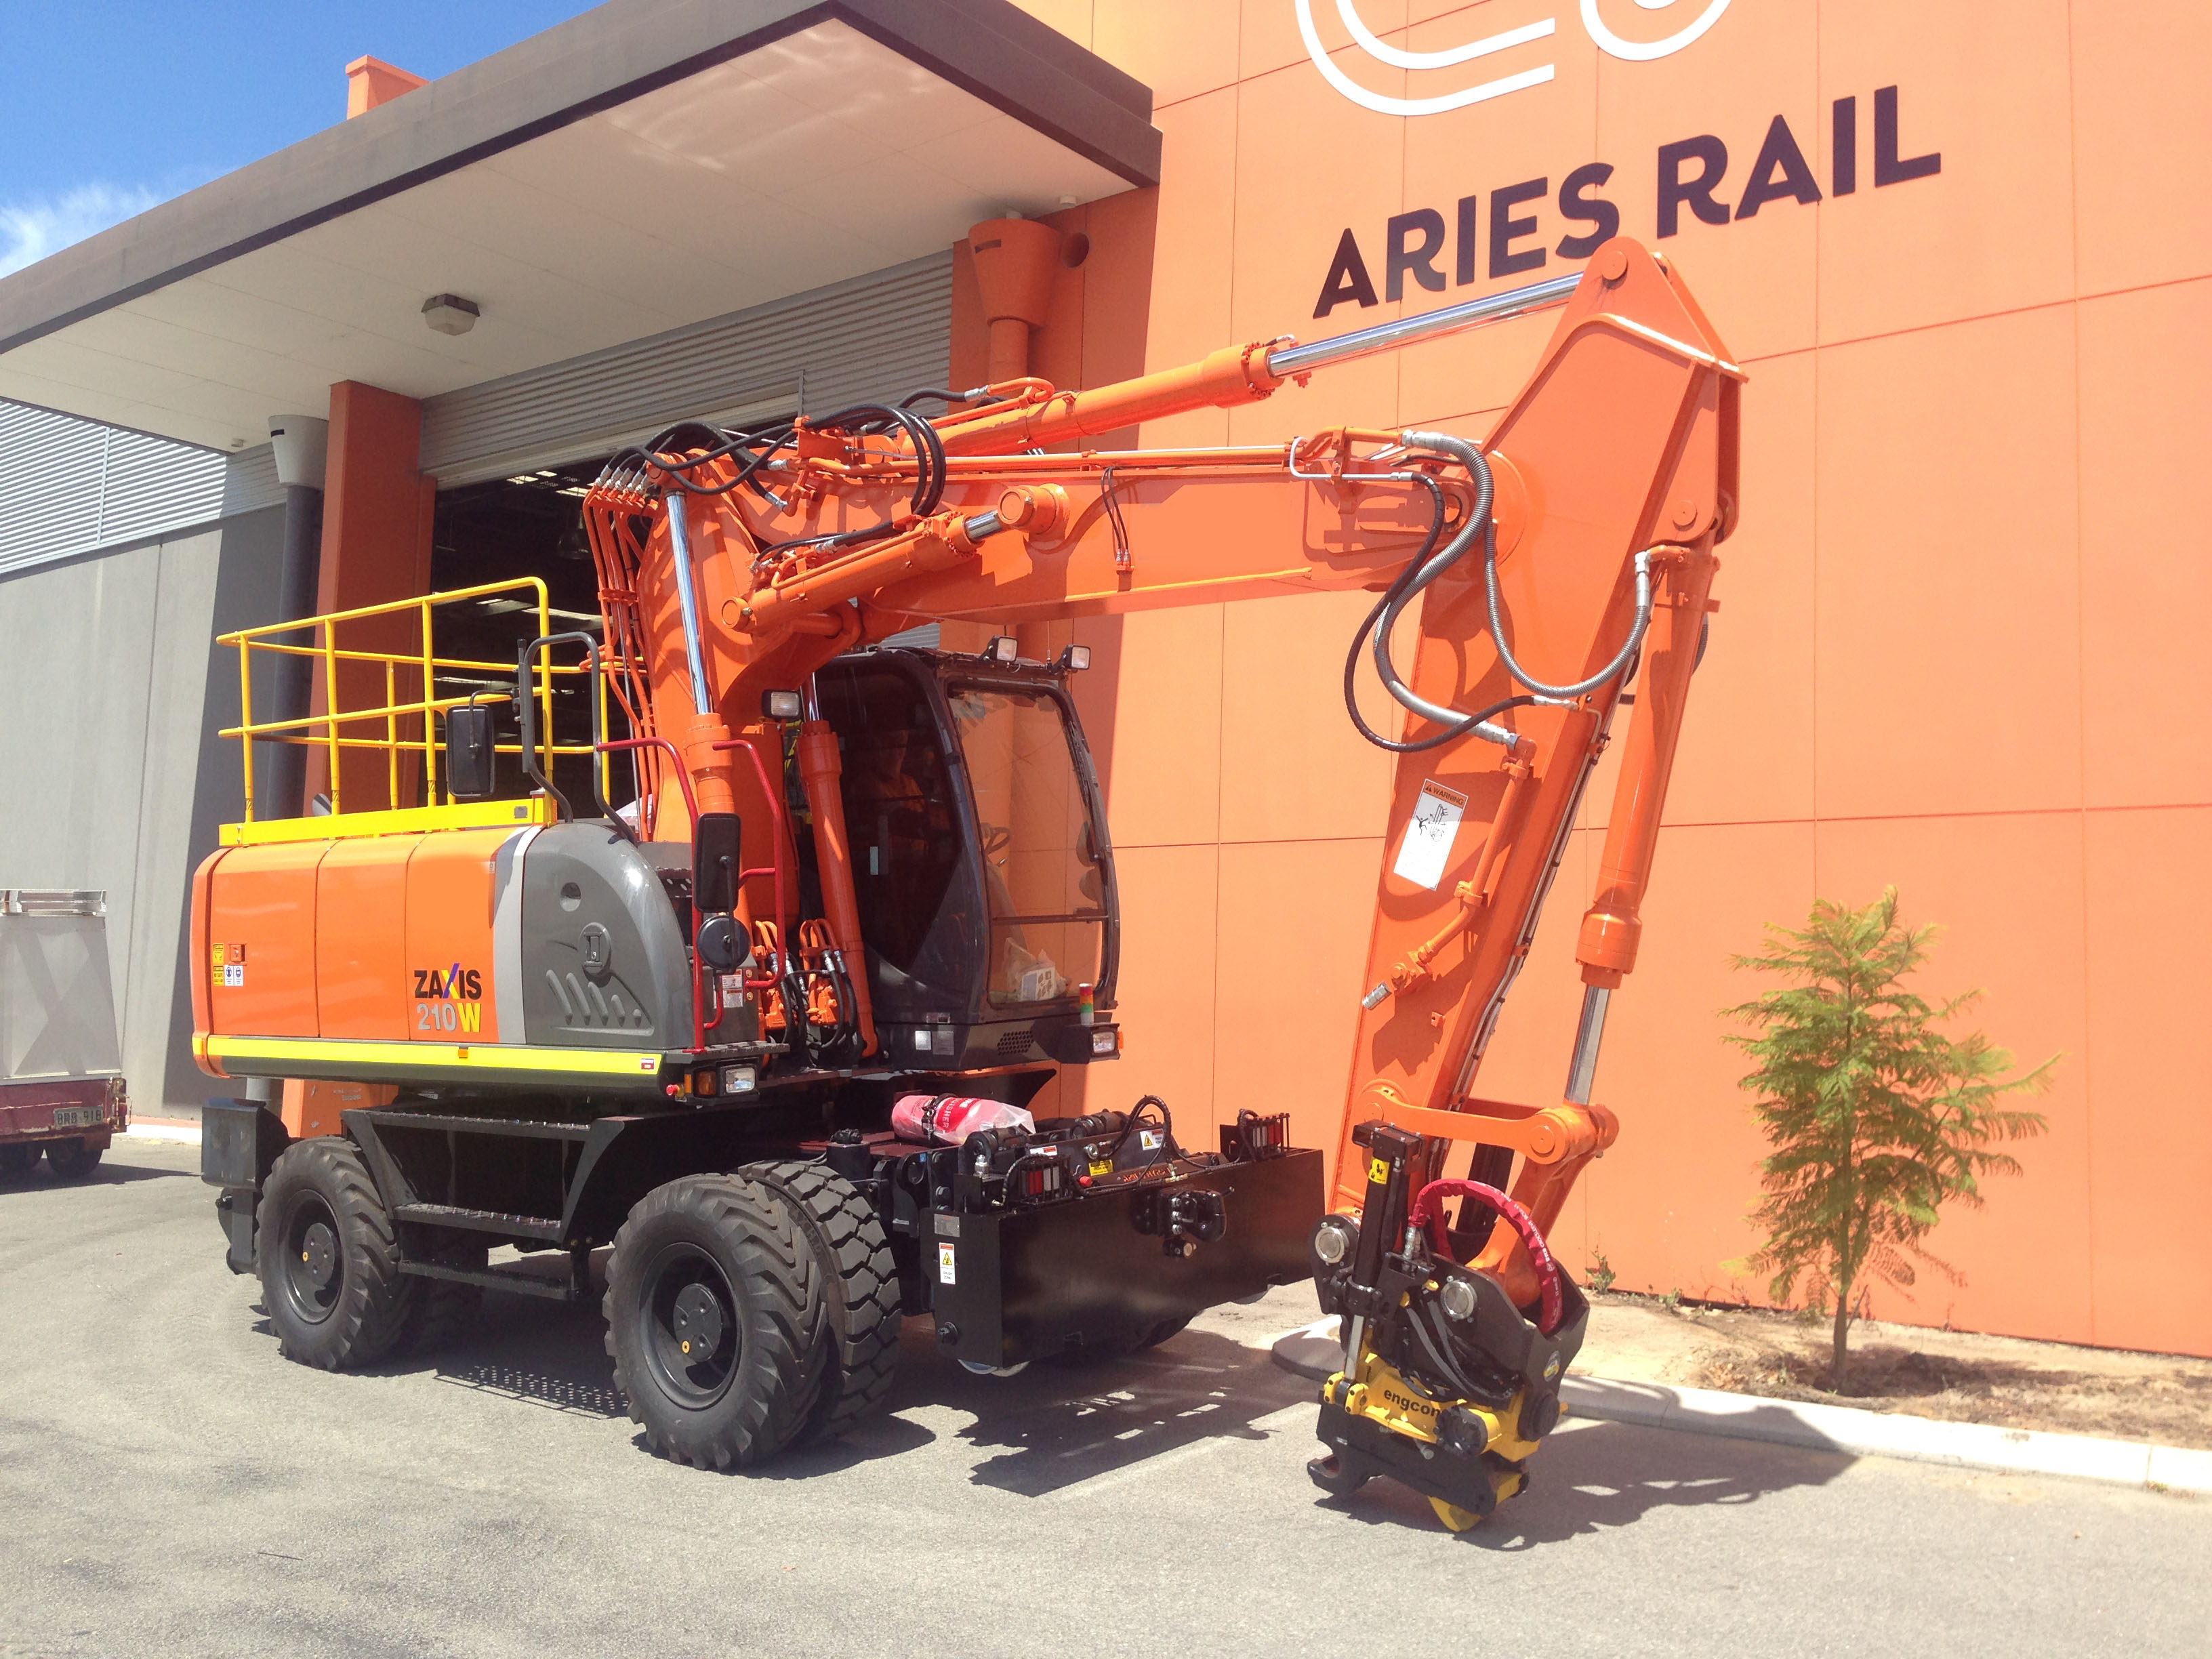 Aries Hyrail Hitachi road-rail excavator